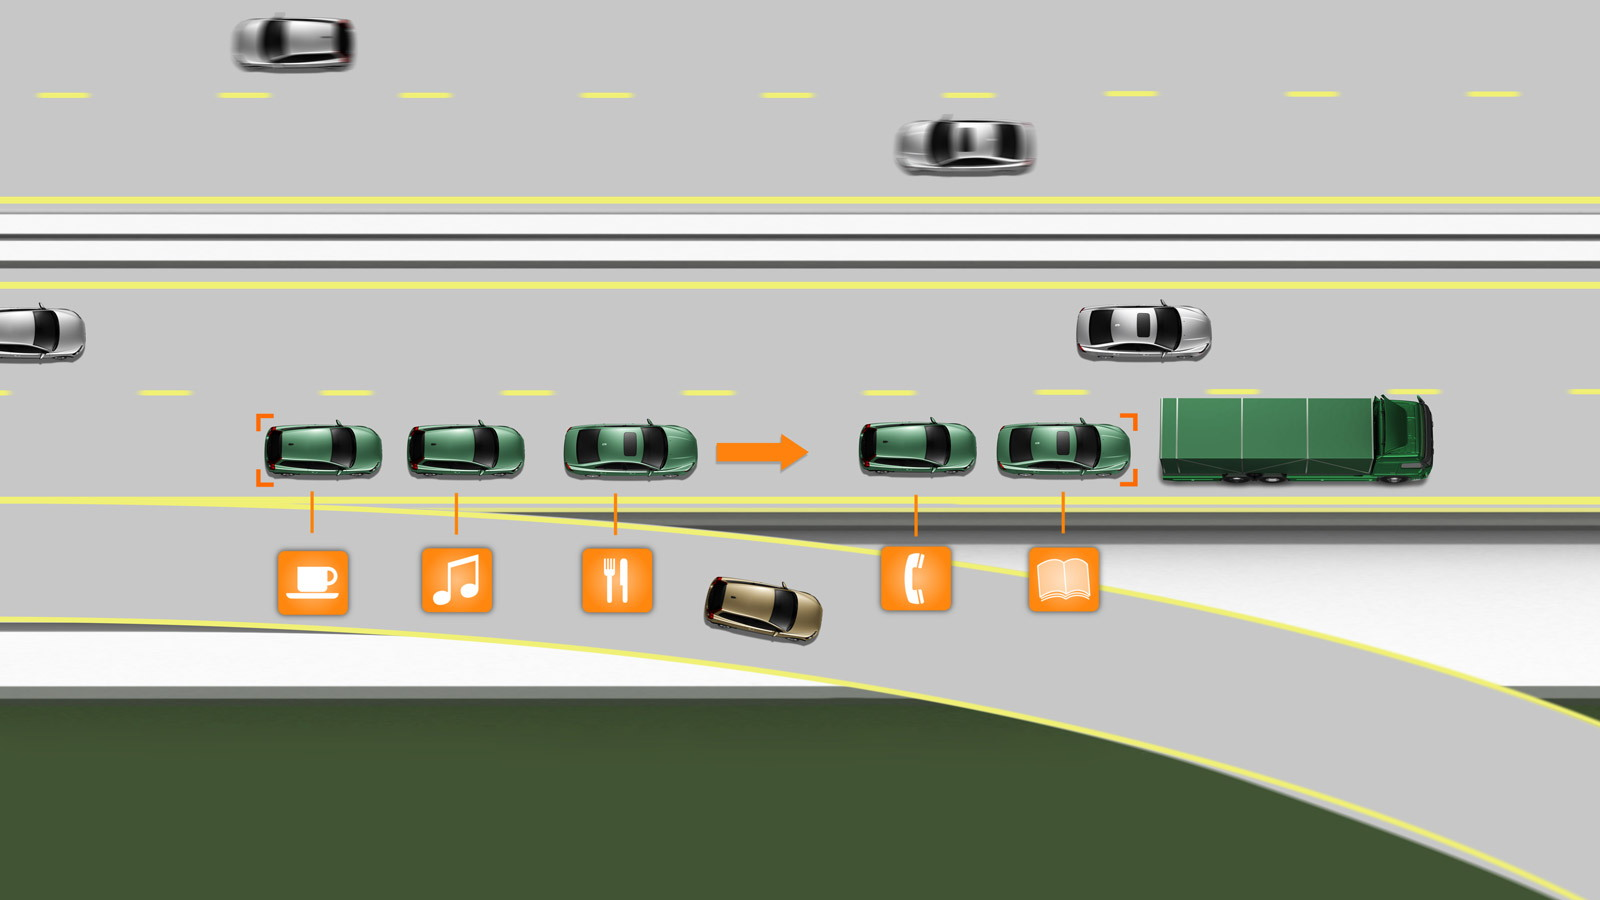 SARTRE self-driving cars during testing